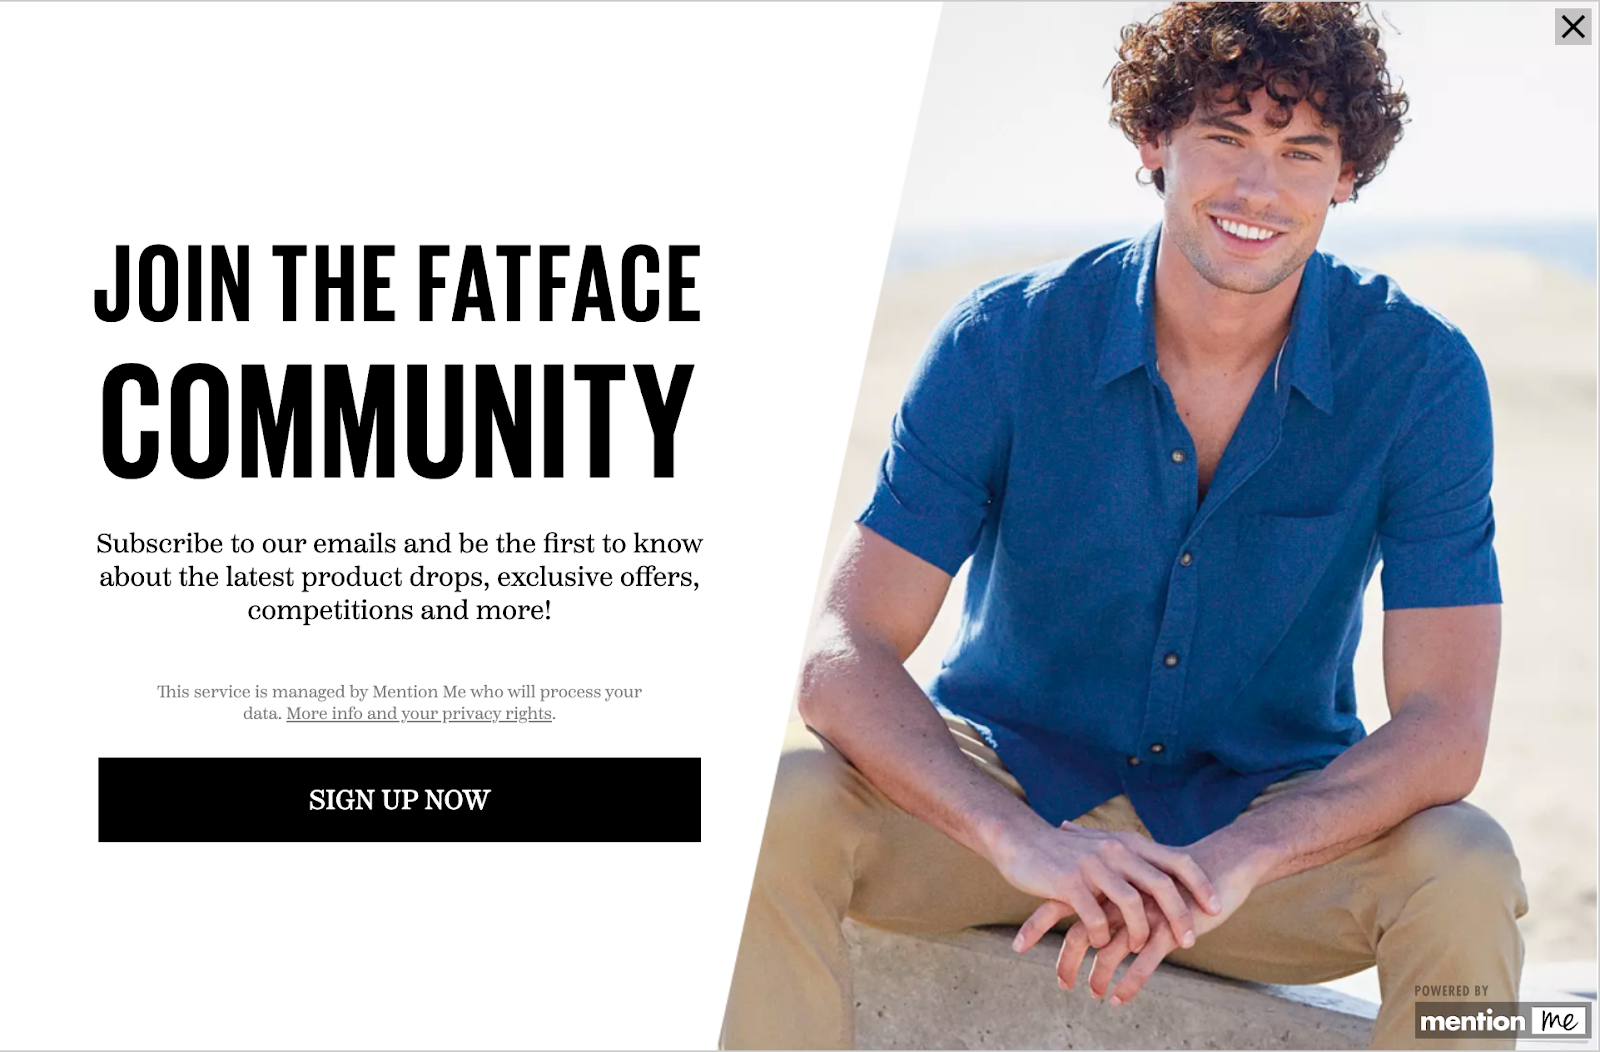 FatFace retention community message